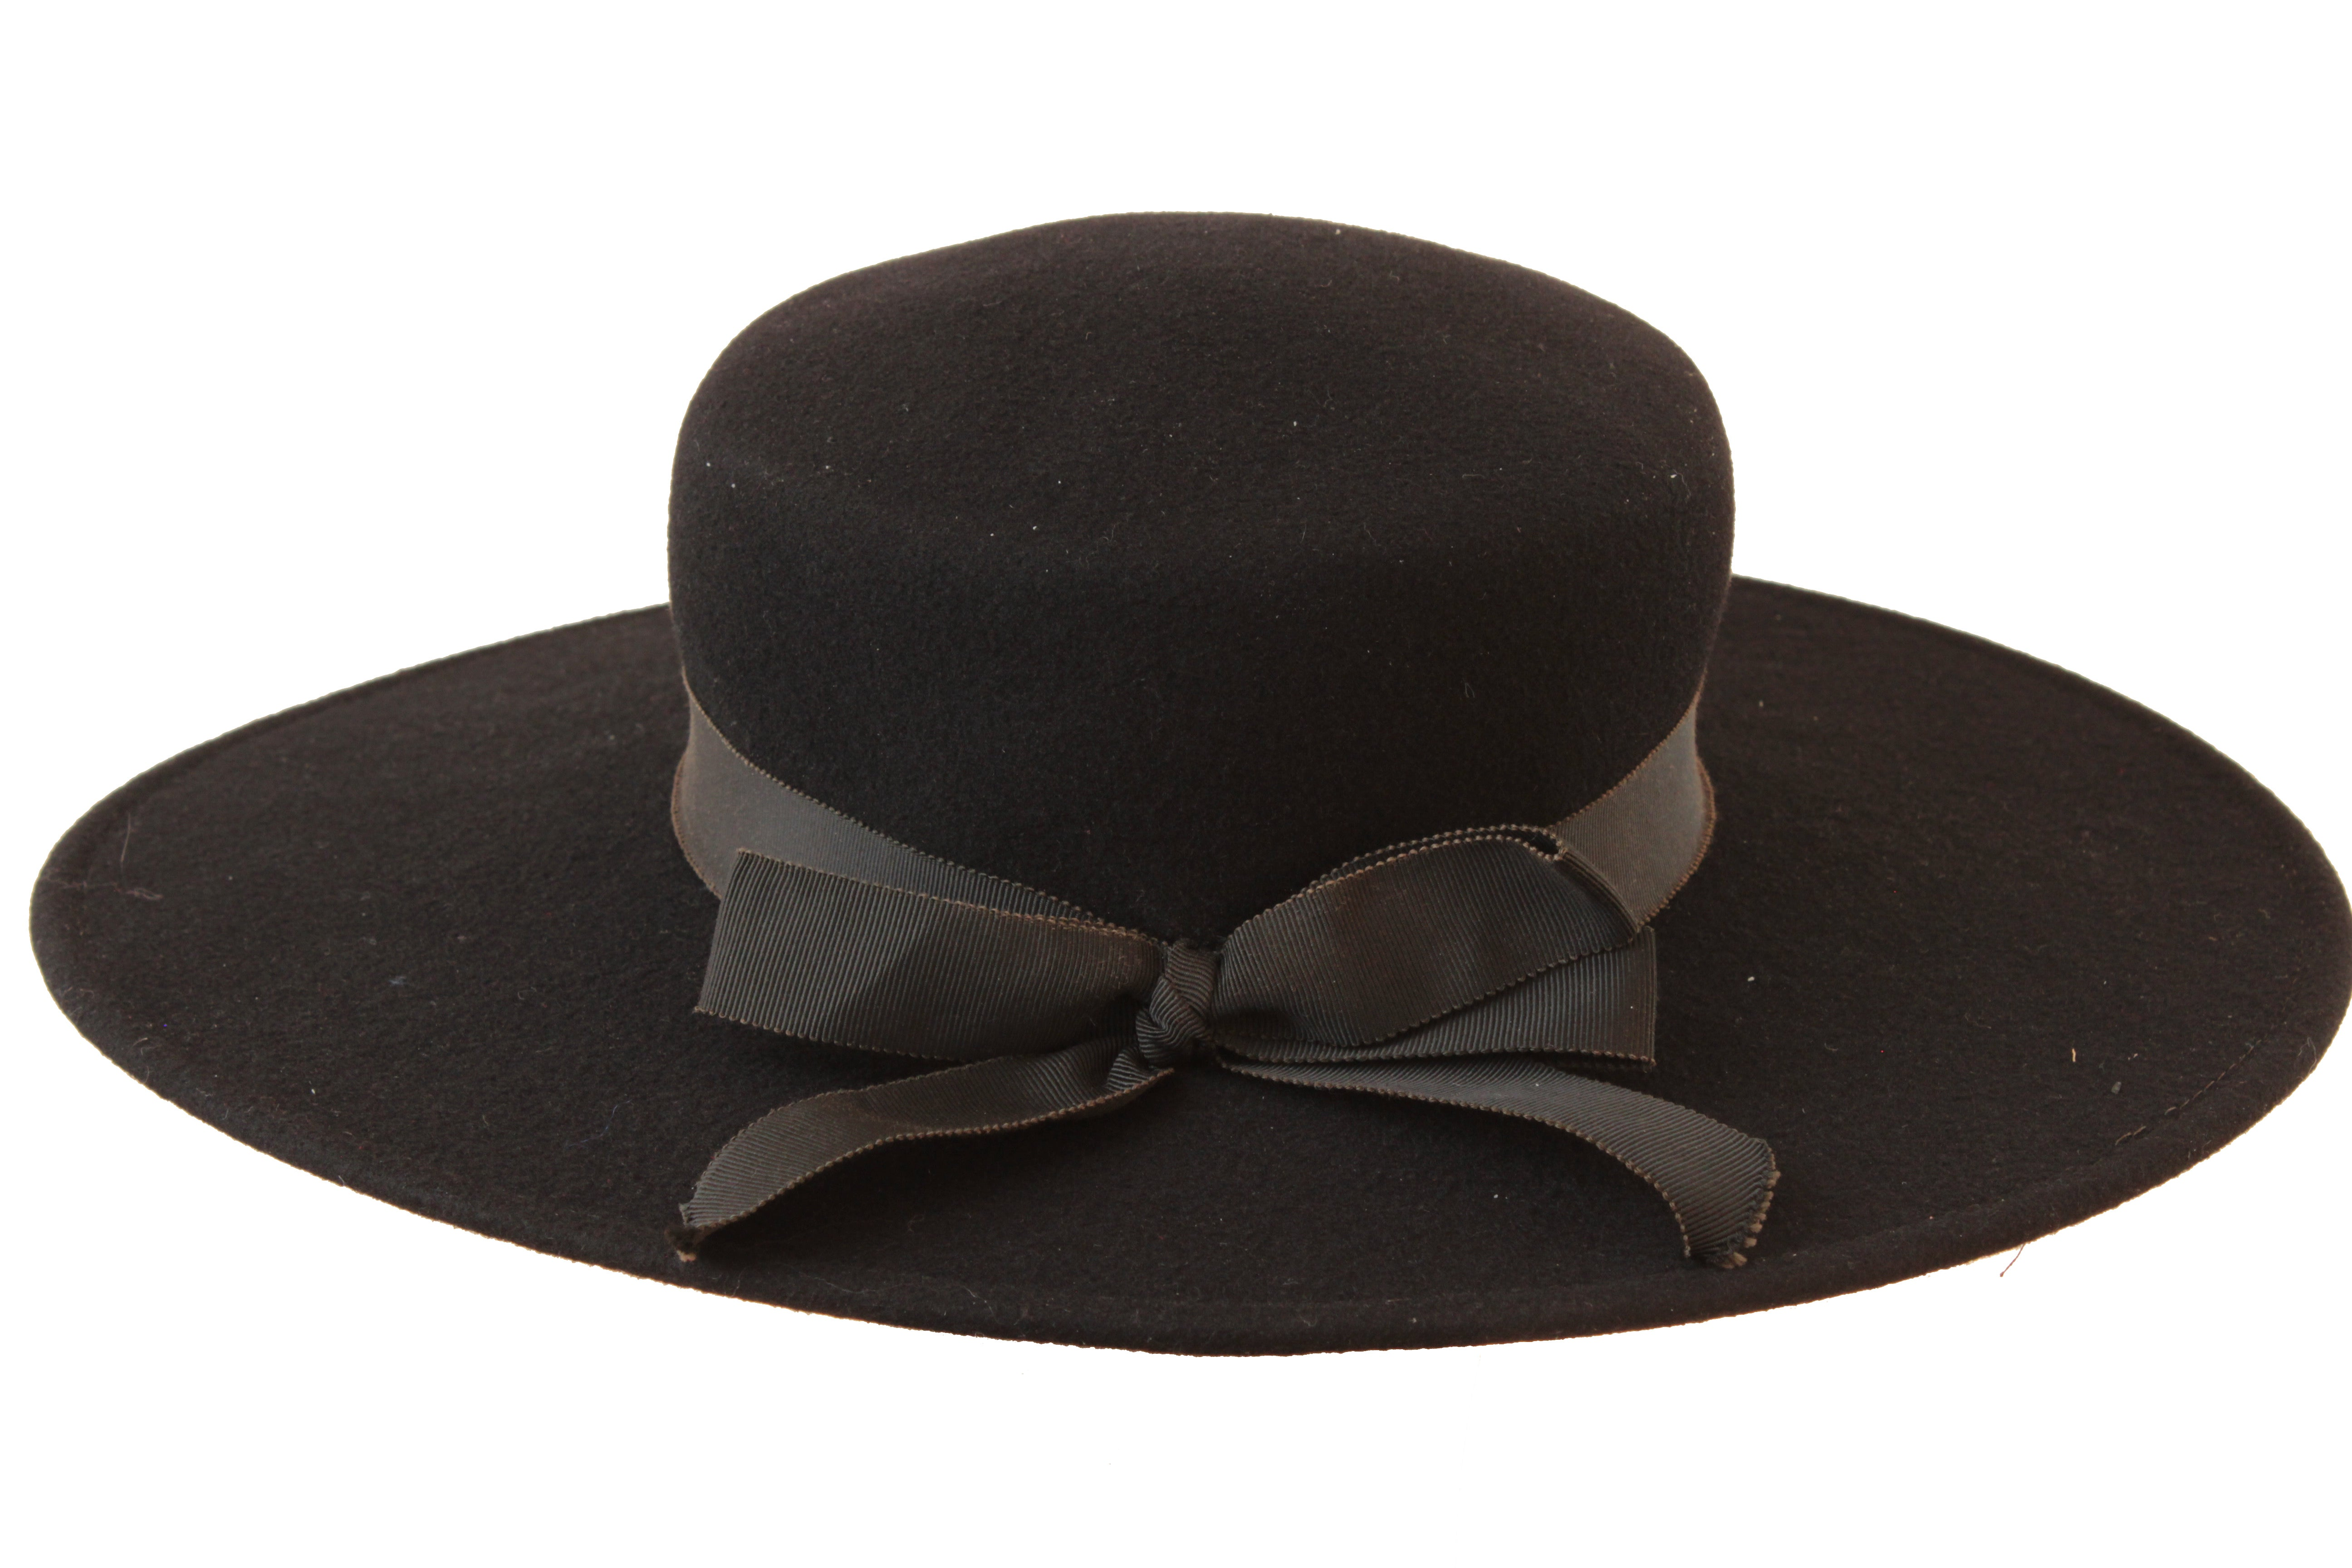 83840e77bbf 70s Yves Saint Laurent Wide Brim Hat Black Wool by Bollman Hat Co Sz S at  1stdibs